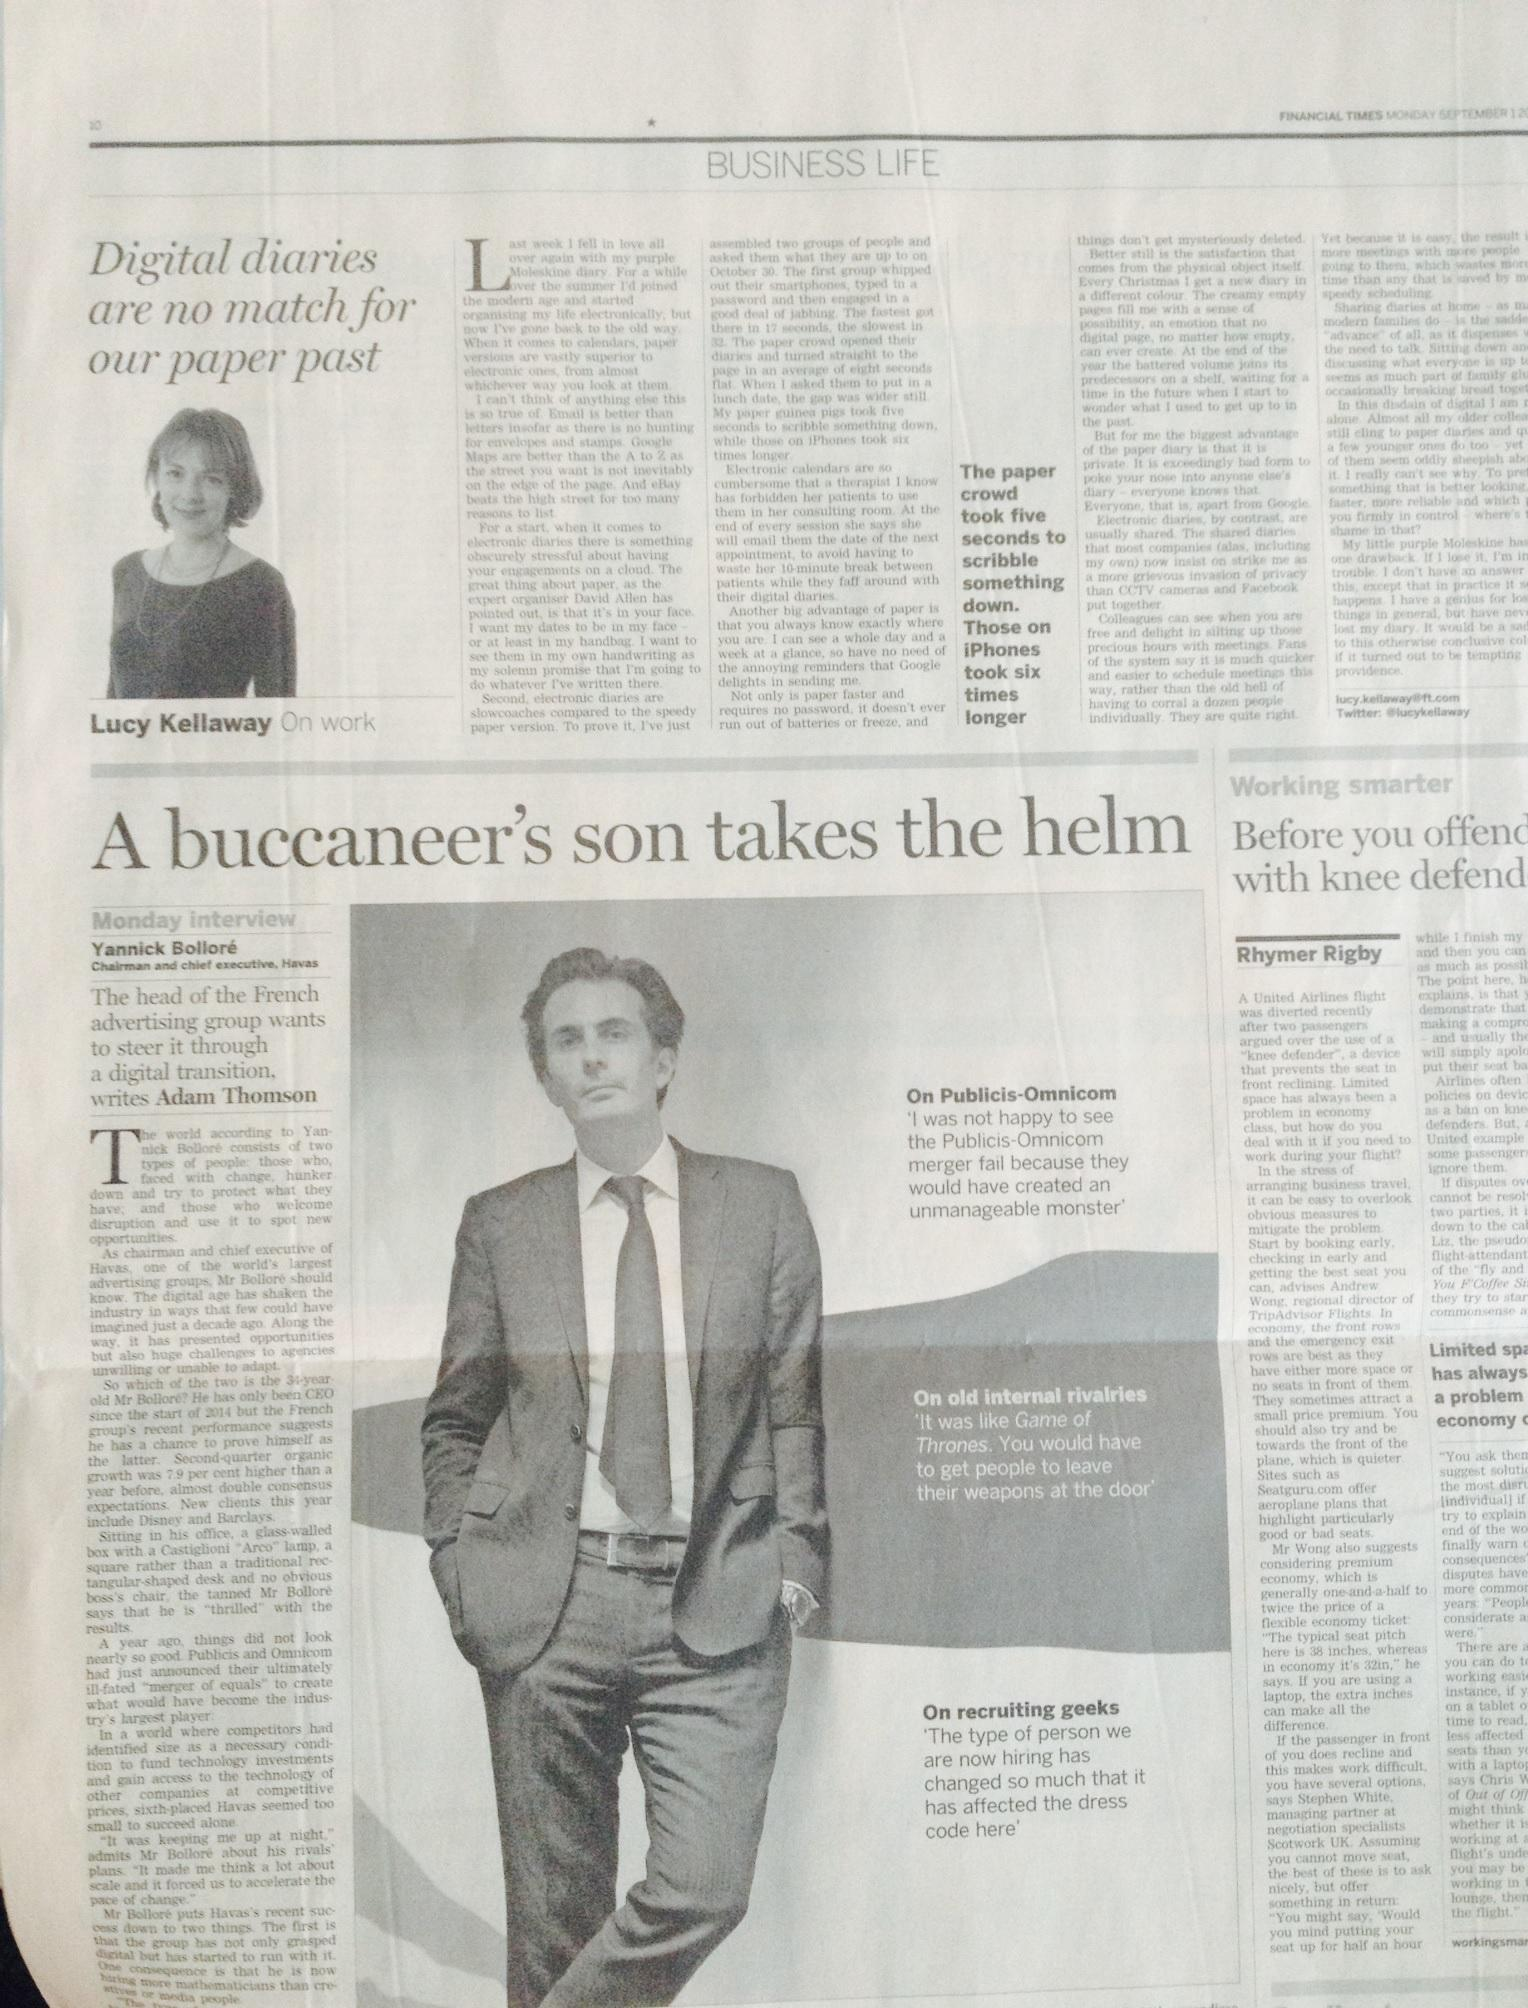 RT @HavasGroup: a buccaneer's son at the helm of #Havas via @FT http://t.co/WItmRXLi6l